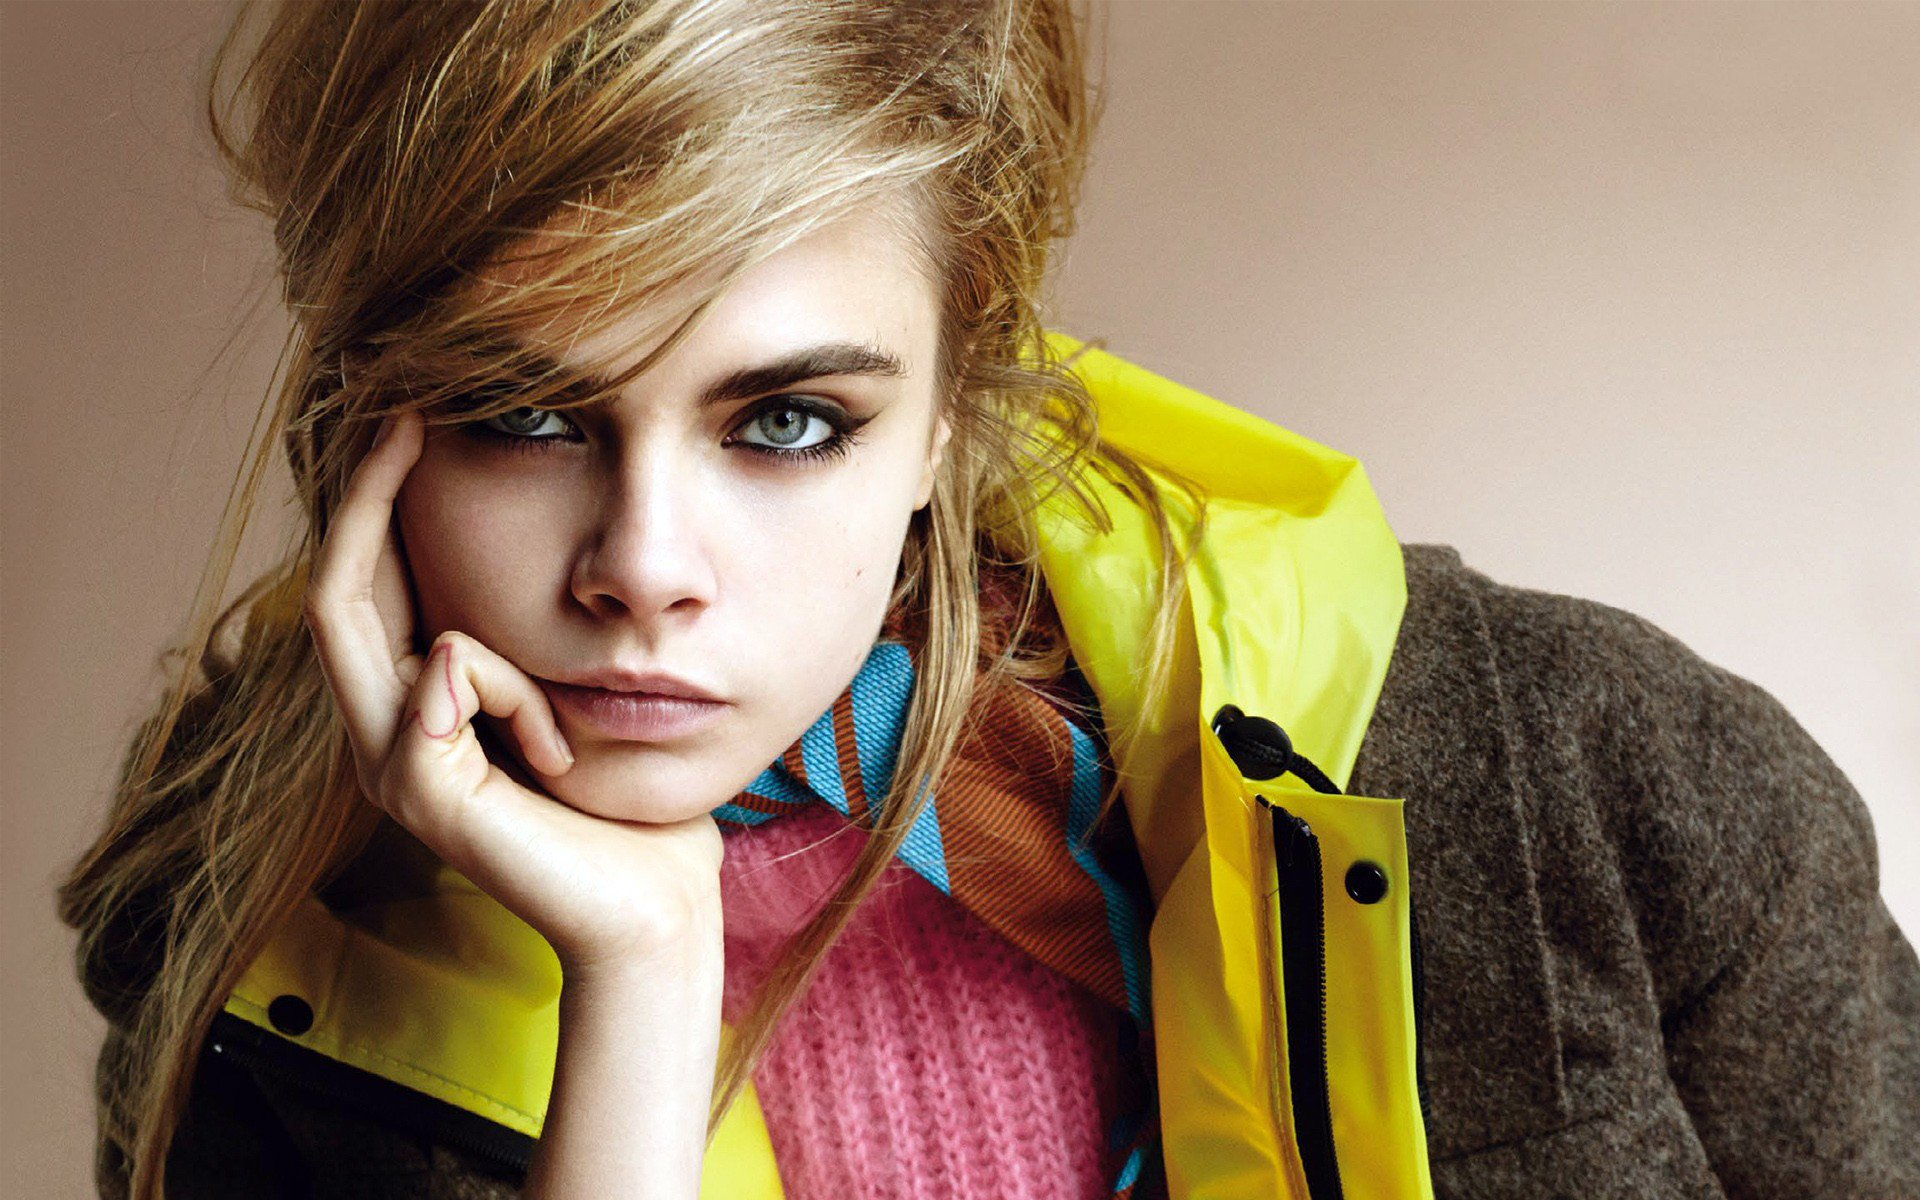 cara delevingne wallpapers high quality download free